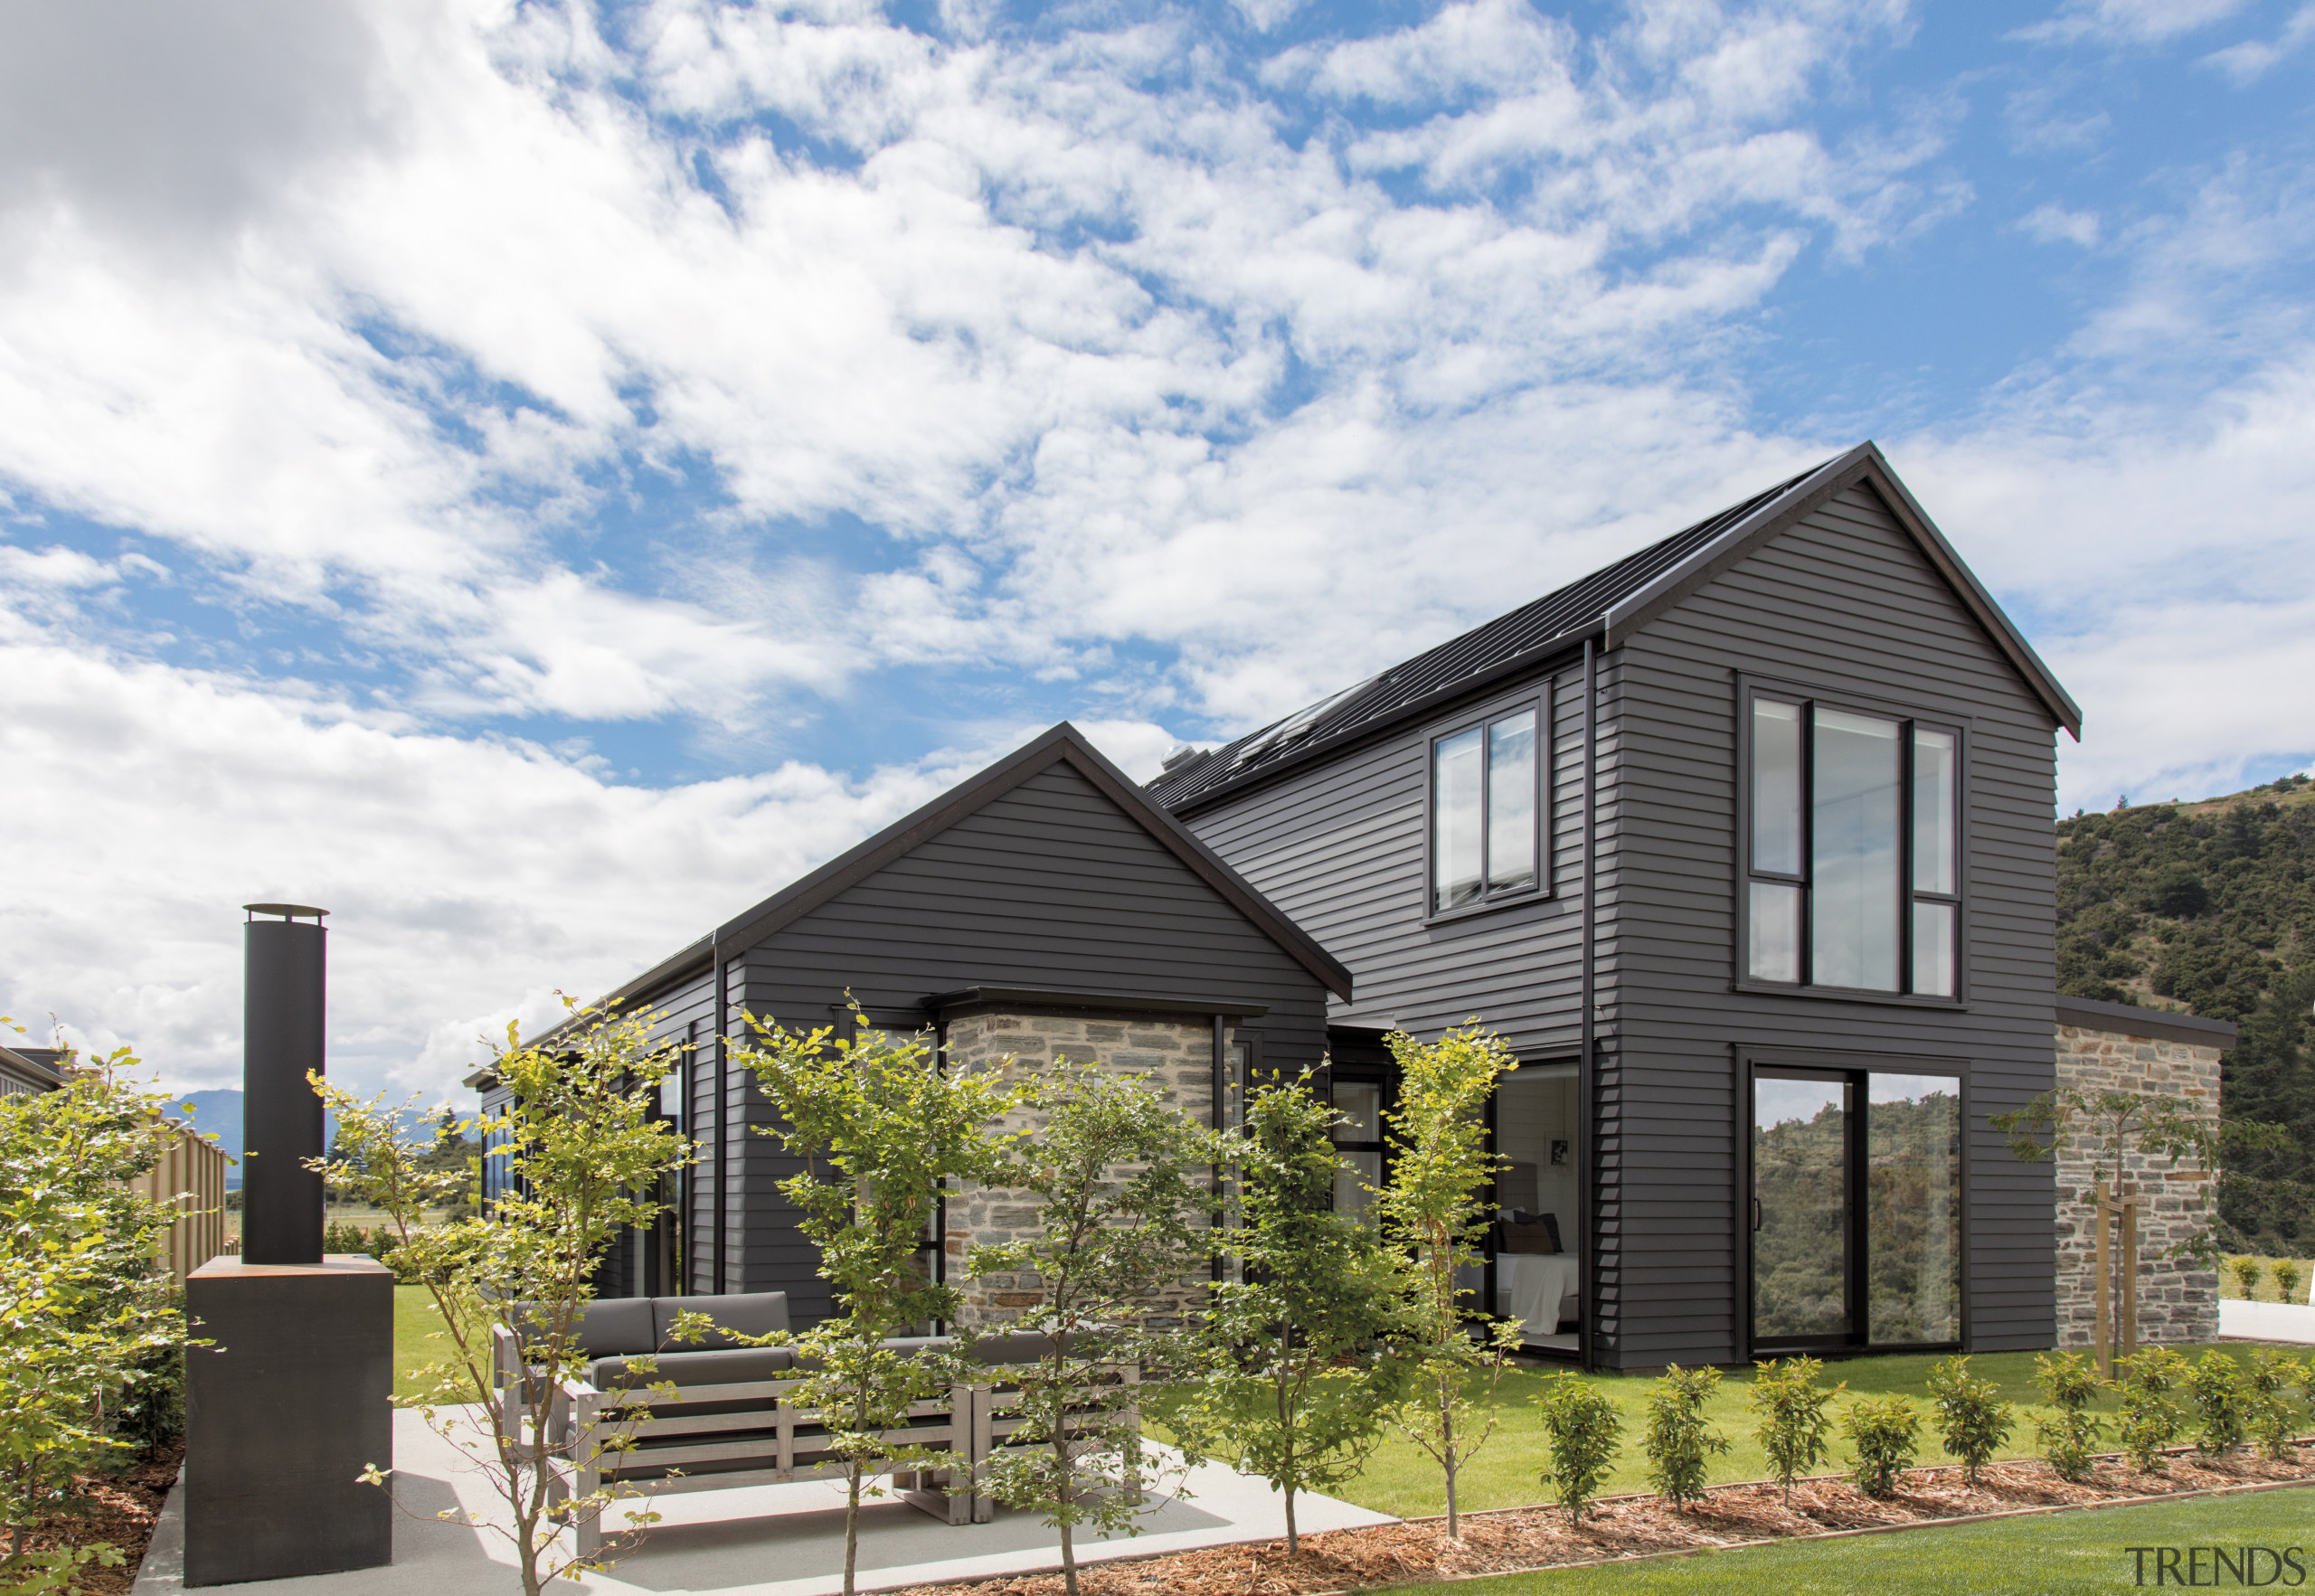 Dark tones and stone cladding elements give this architecture, building, cloud, cottage, estate, facade, farmhouse, grass, home, house, land lot, landscape, neighbourhood, property, real estate, residential area, roof, rural area, siding, sky, suburb, tree, white